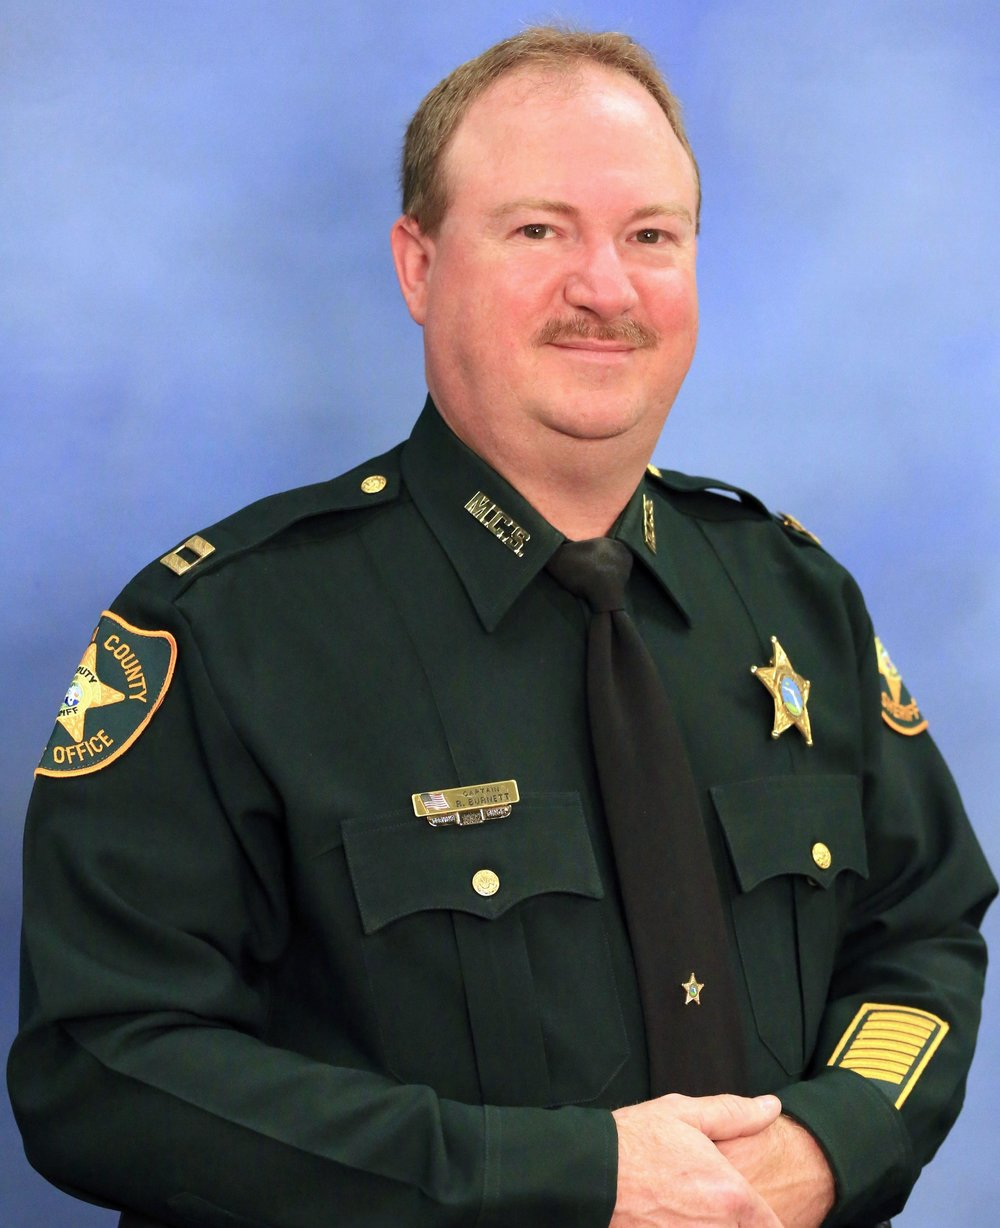 Captain Ron Burnett     Jail Support Division    rburnett@marionso.com